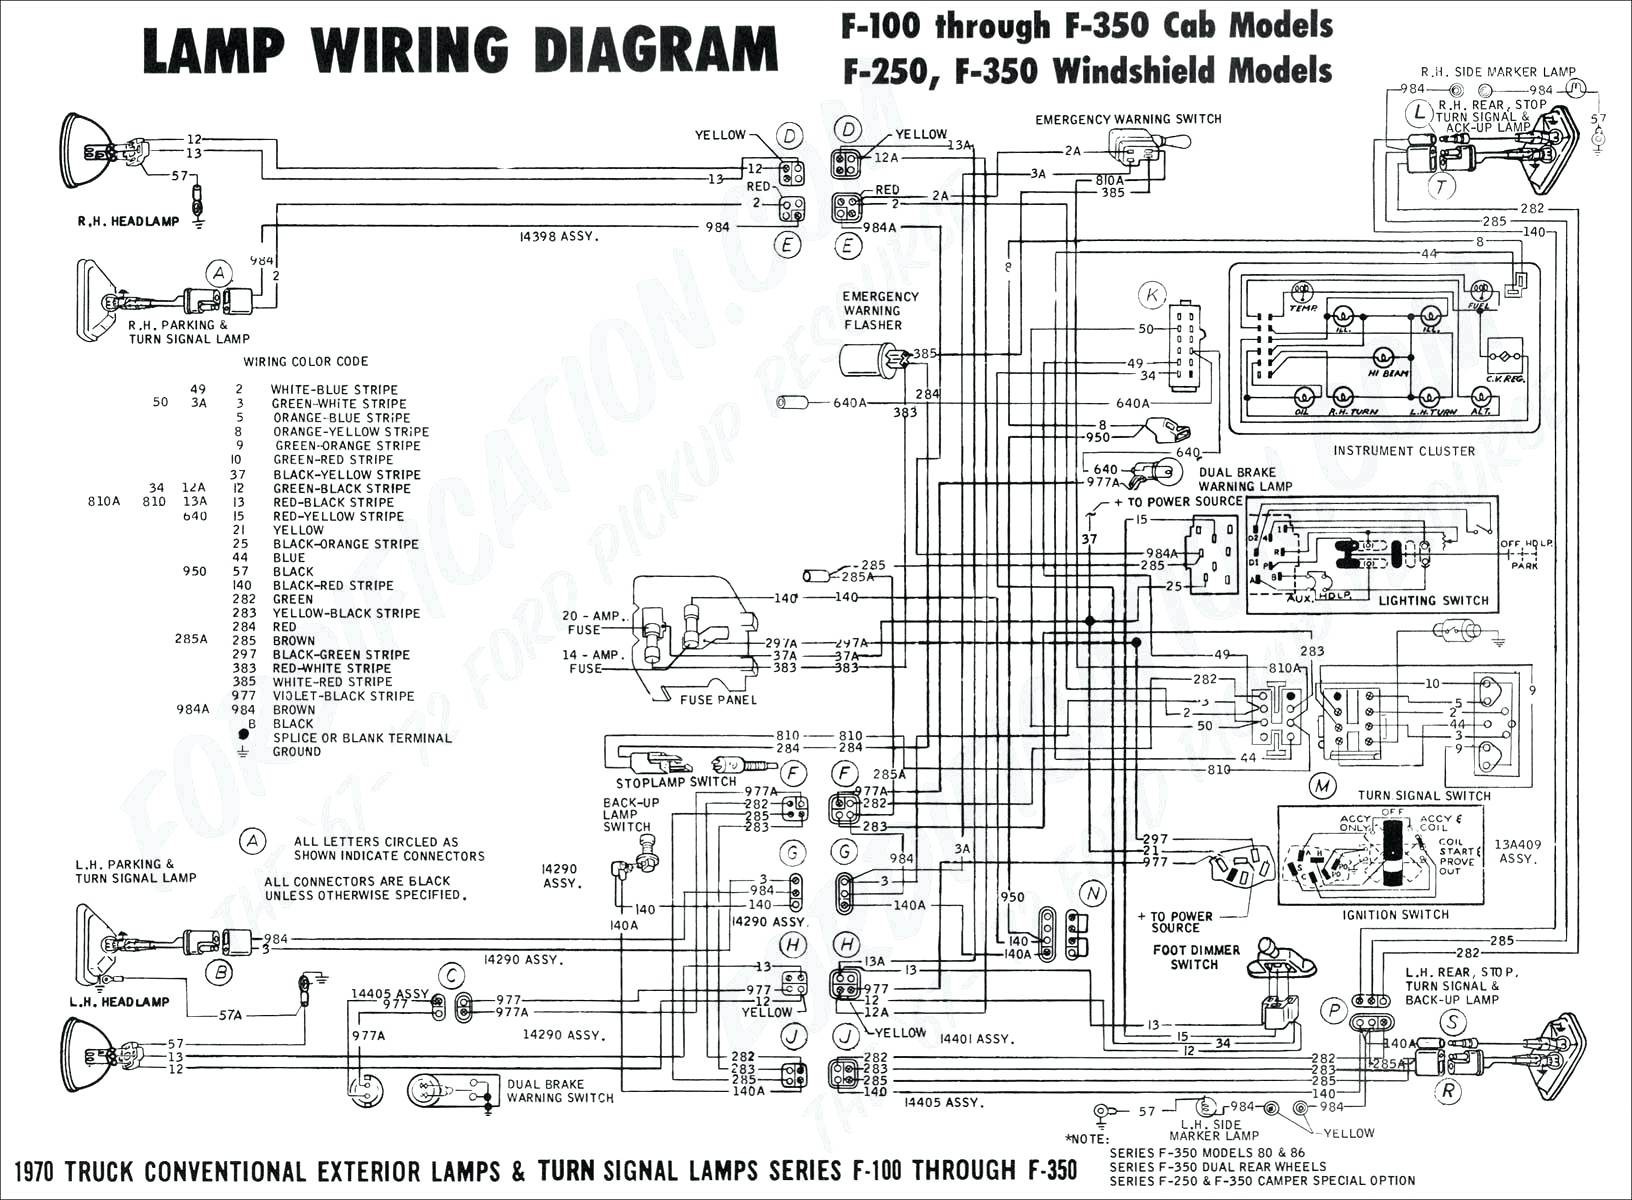 fiero 3800 wiring diagram vauxhall astra h radio gm engine vector